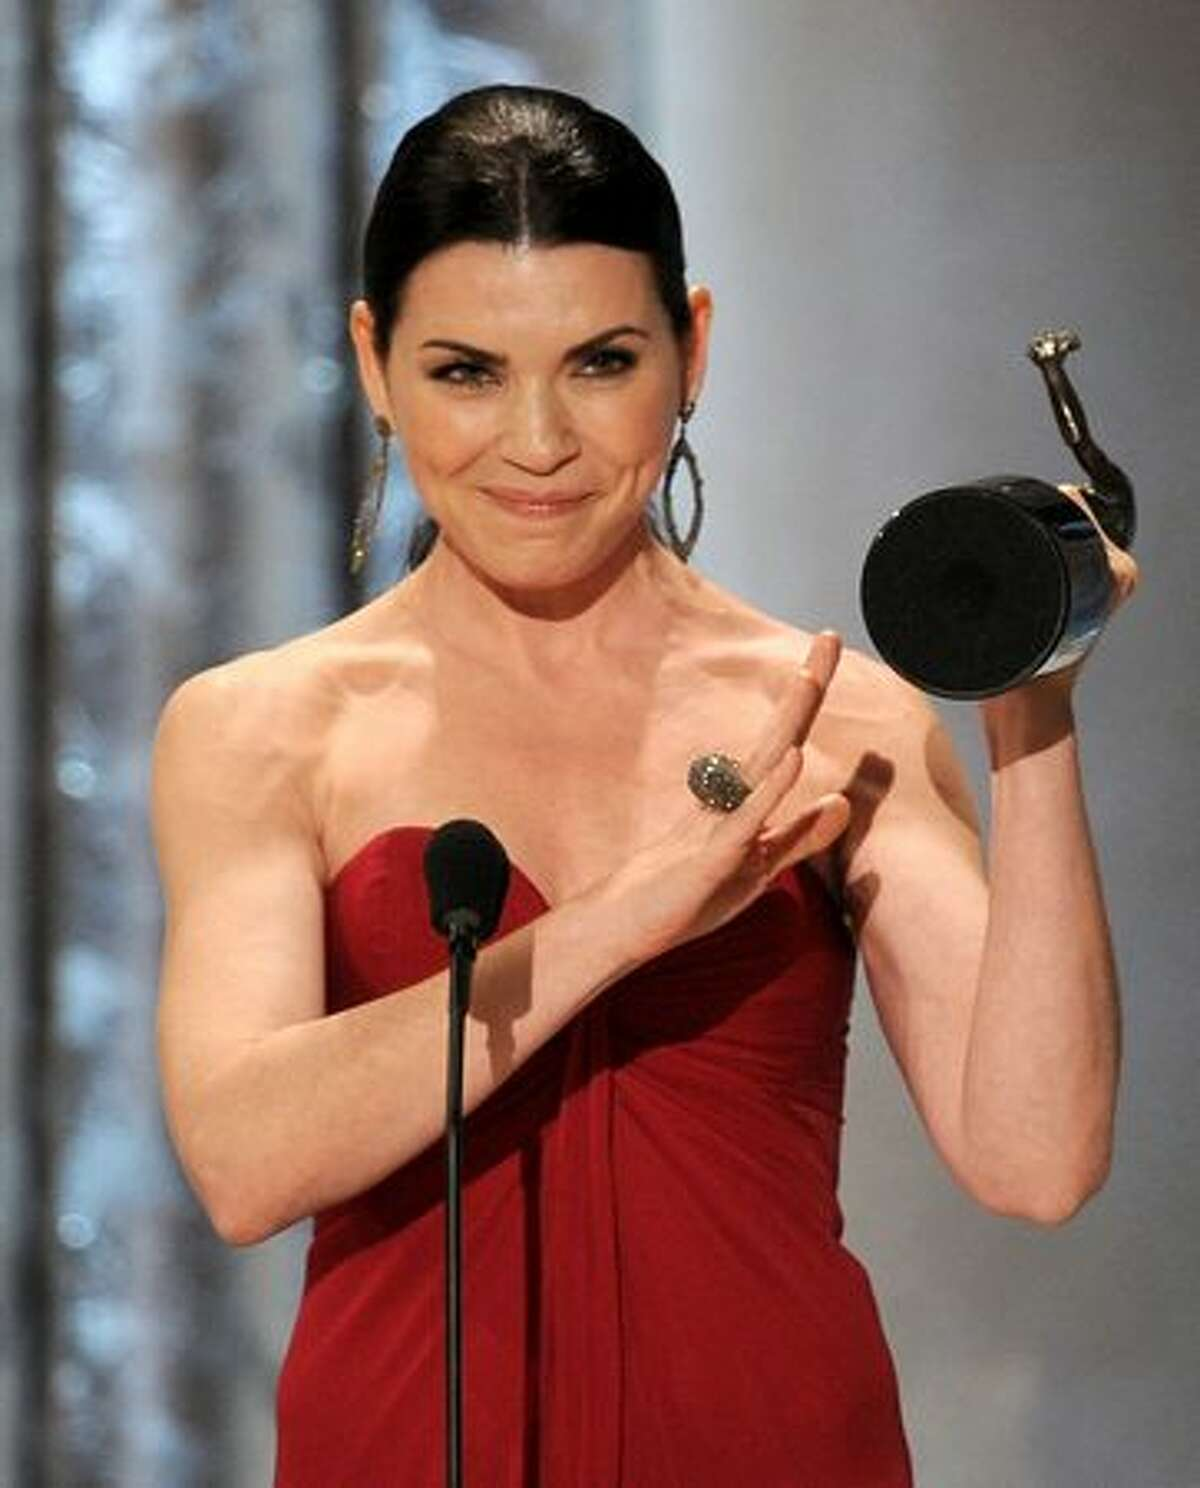 Actor Julianna Margulies, winner of Outstanding Performance by a Female Actor in a Drama Series award for